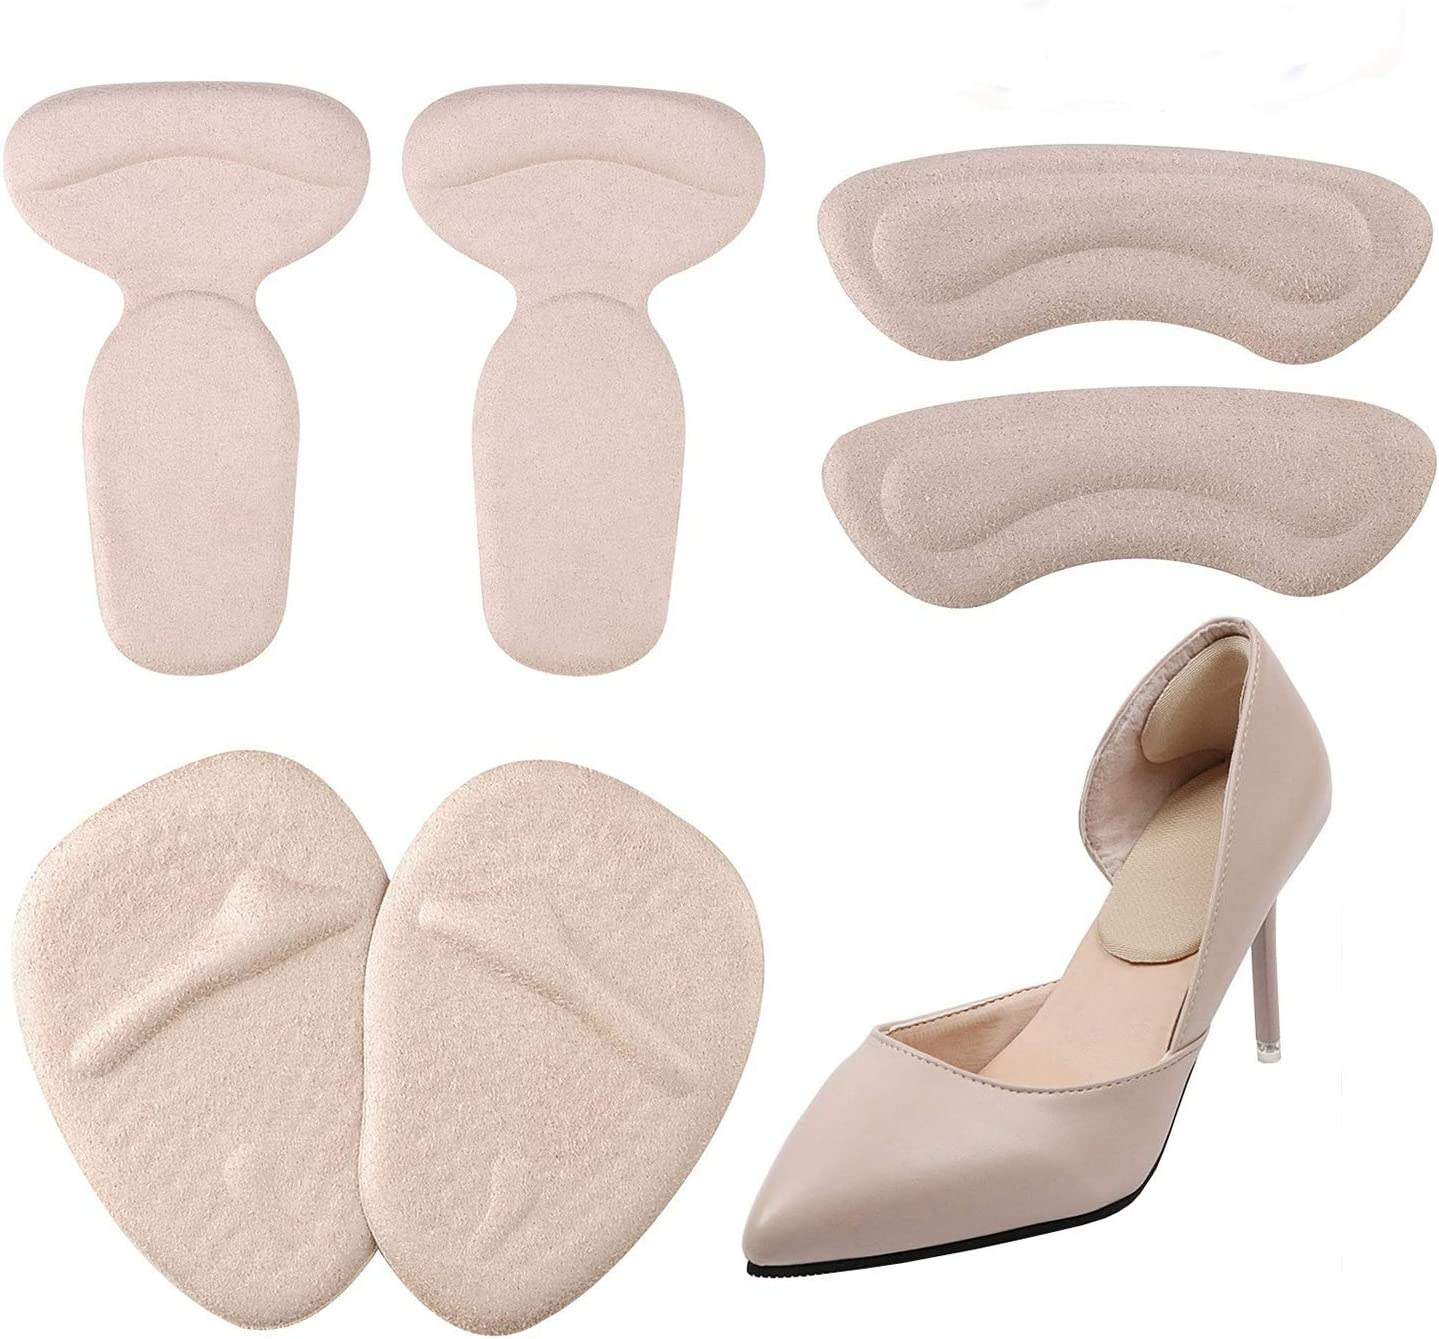 1 Pair Heel Pad Insoles Cushion Shock Absorption Relief Foot Pain Soft Inse~ii